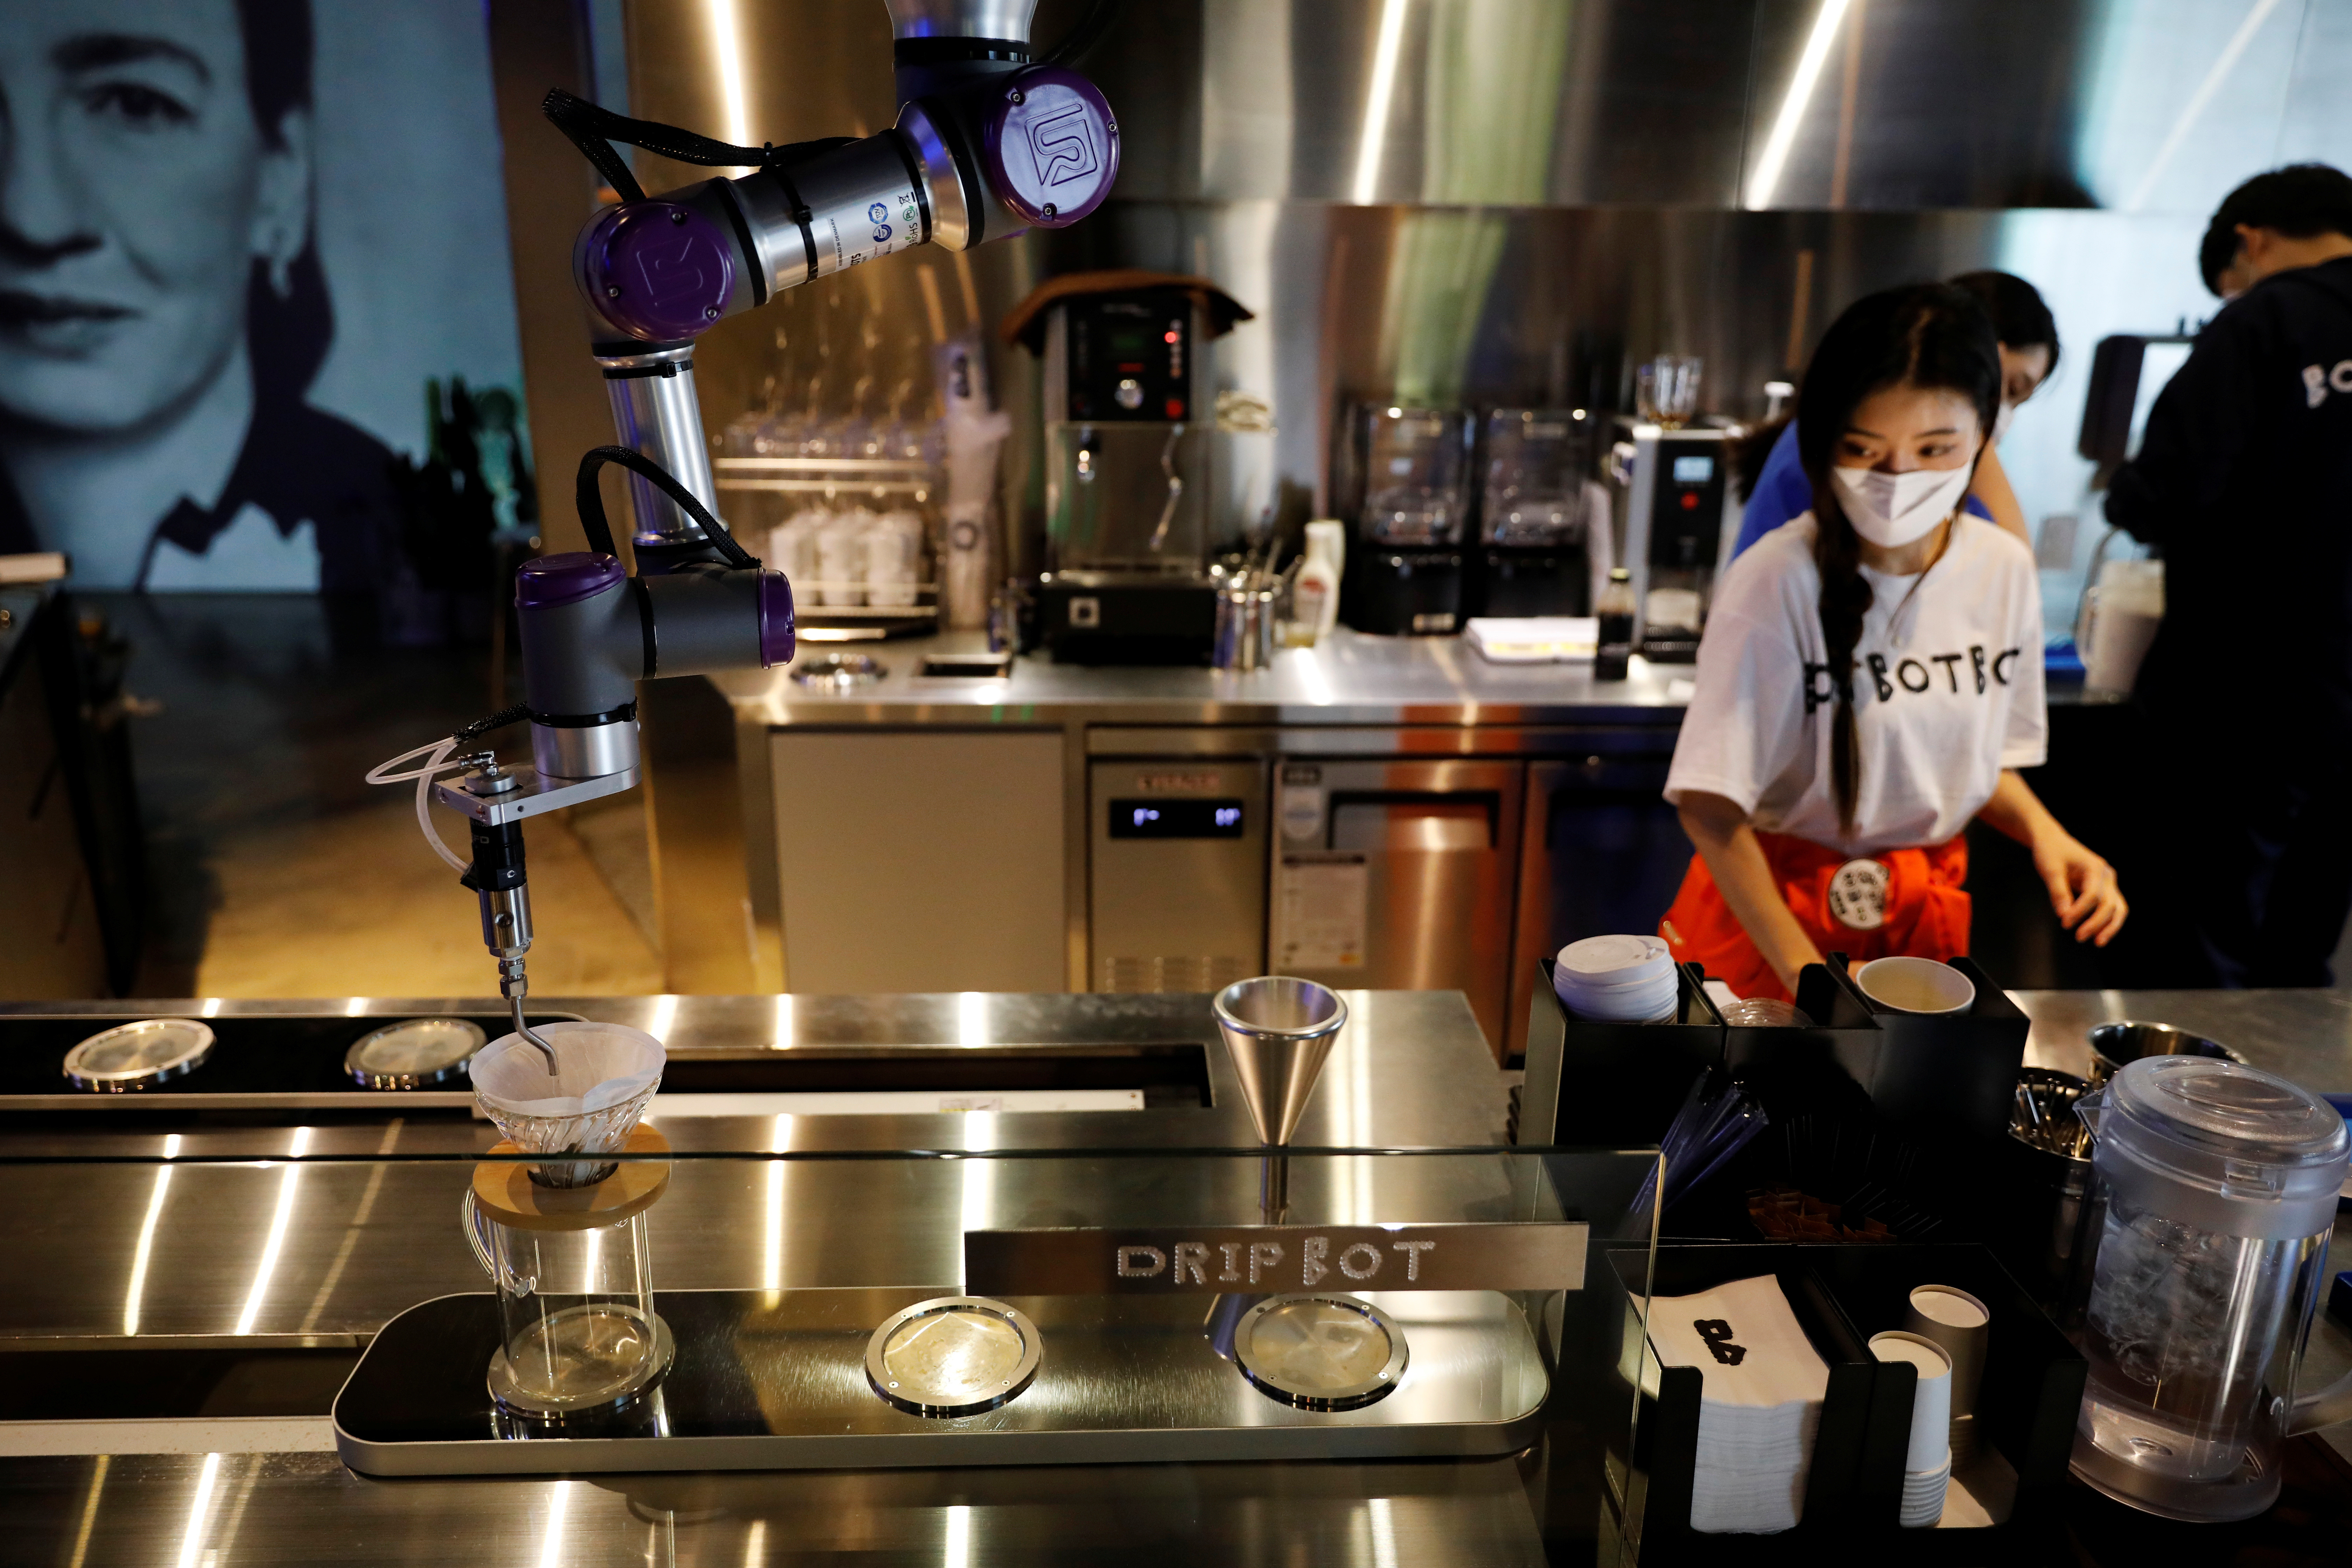 Drip Bot makes a cup of coffee as an employee wearing a mask to avoid the spread of the coronavirus disease (COVID-19) works at a cafe in Seoul, South Korea, June 3, 2020. Picture taken on June 3, 2020.    REUTERS/Kim Hong-Ji - RC222H9JS34E